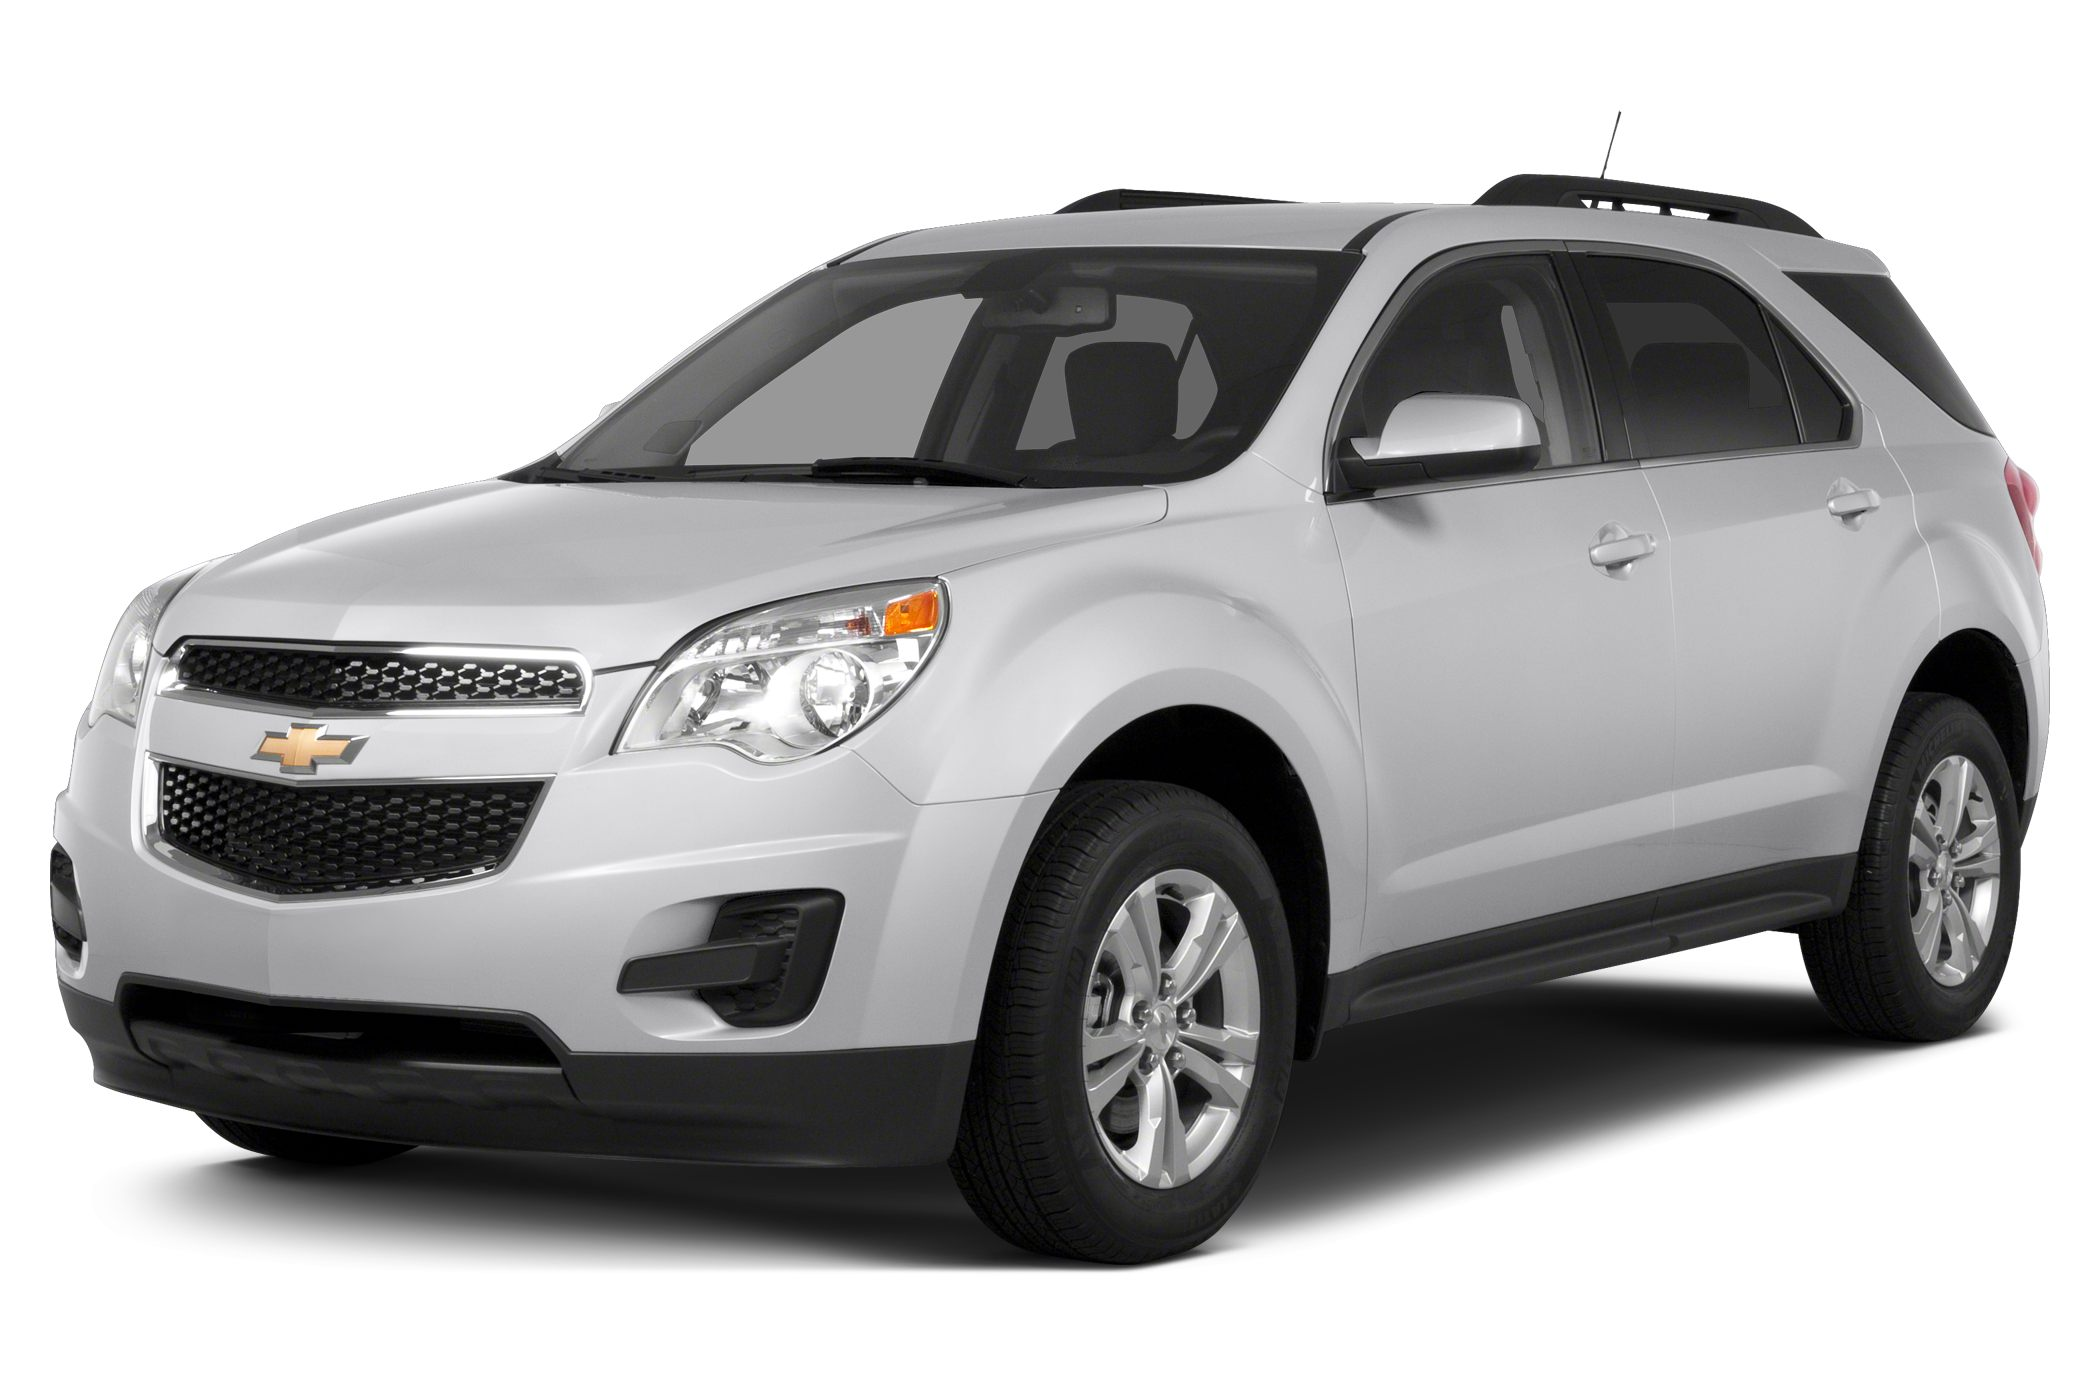 2013 Chevrolet Equinox 1LT SUV for sale in Waynesboro for $24,995 with 6,900 miles